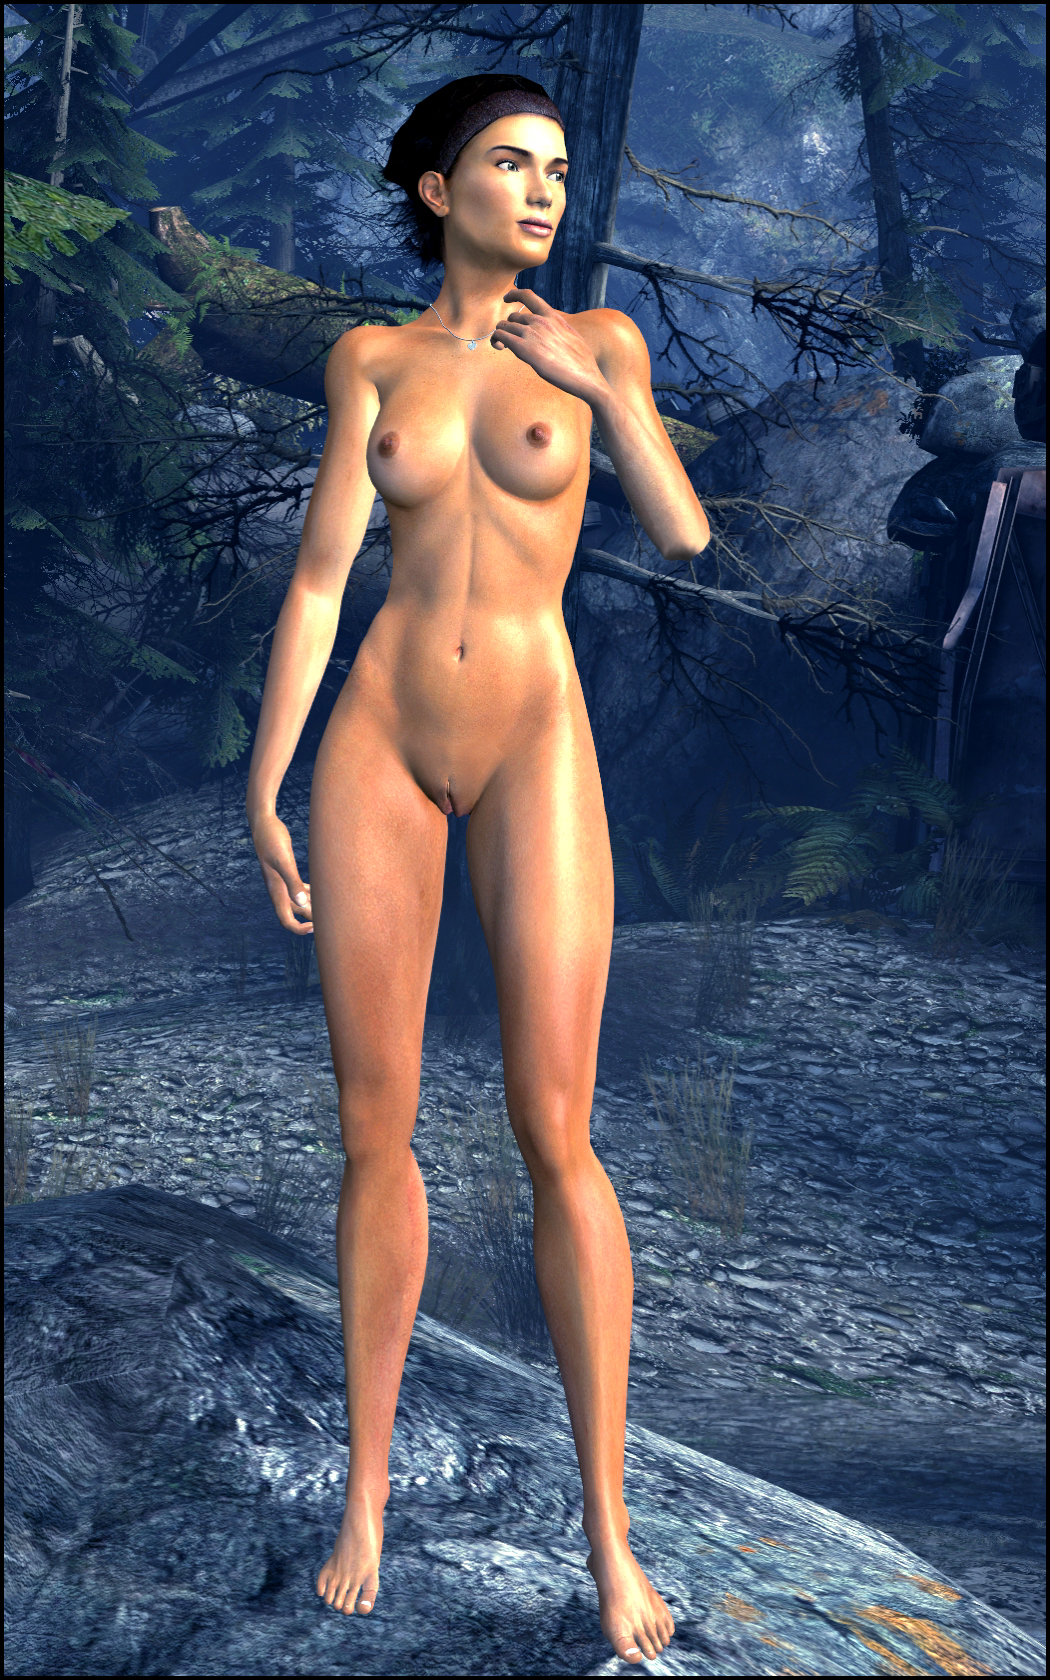 Half life alyx nude mod anime photo